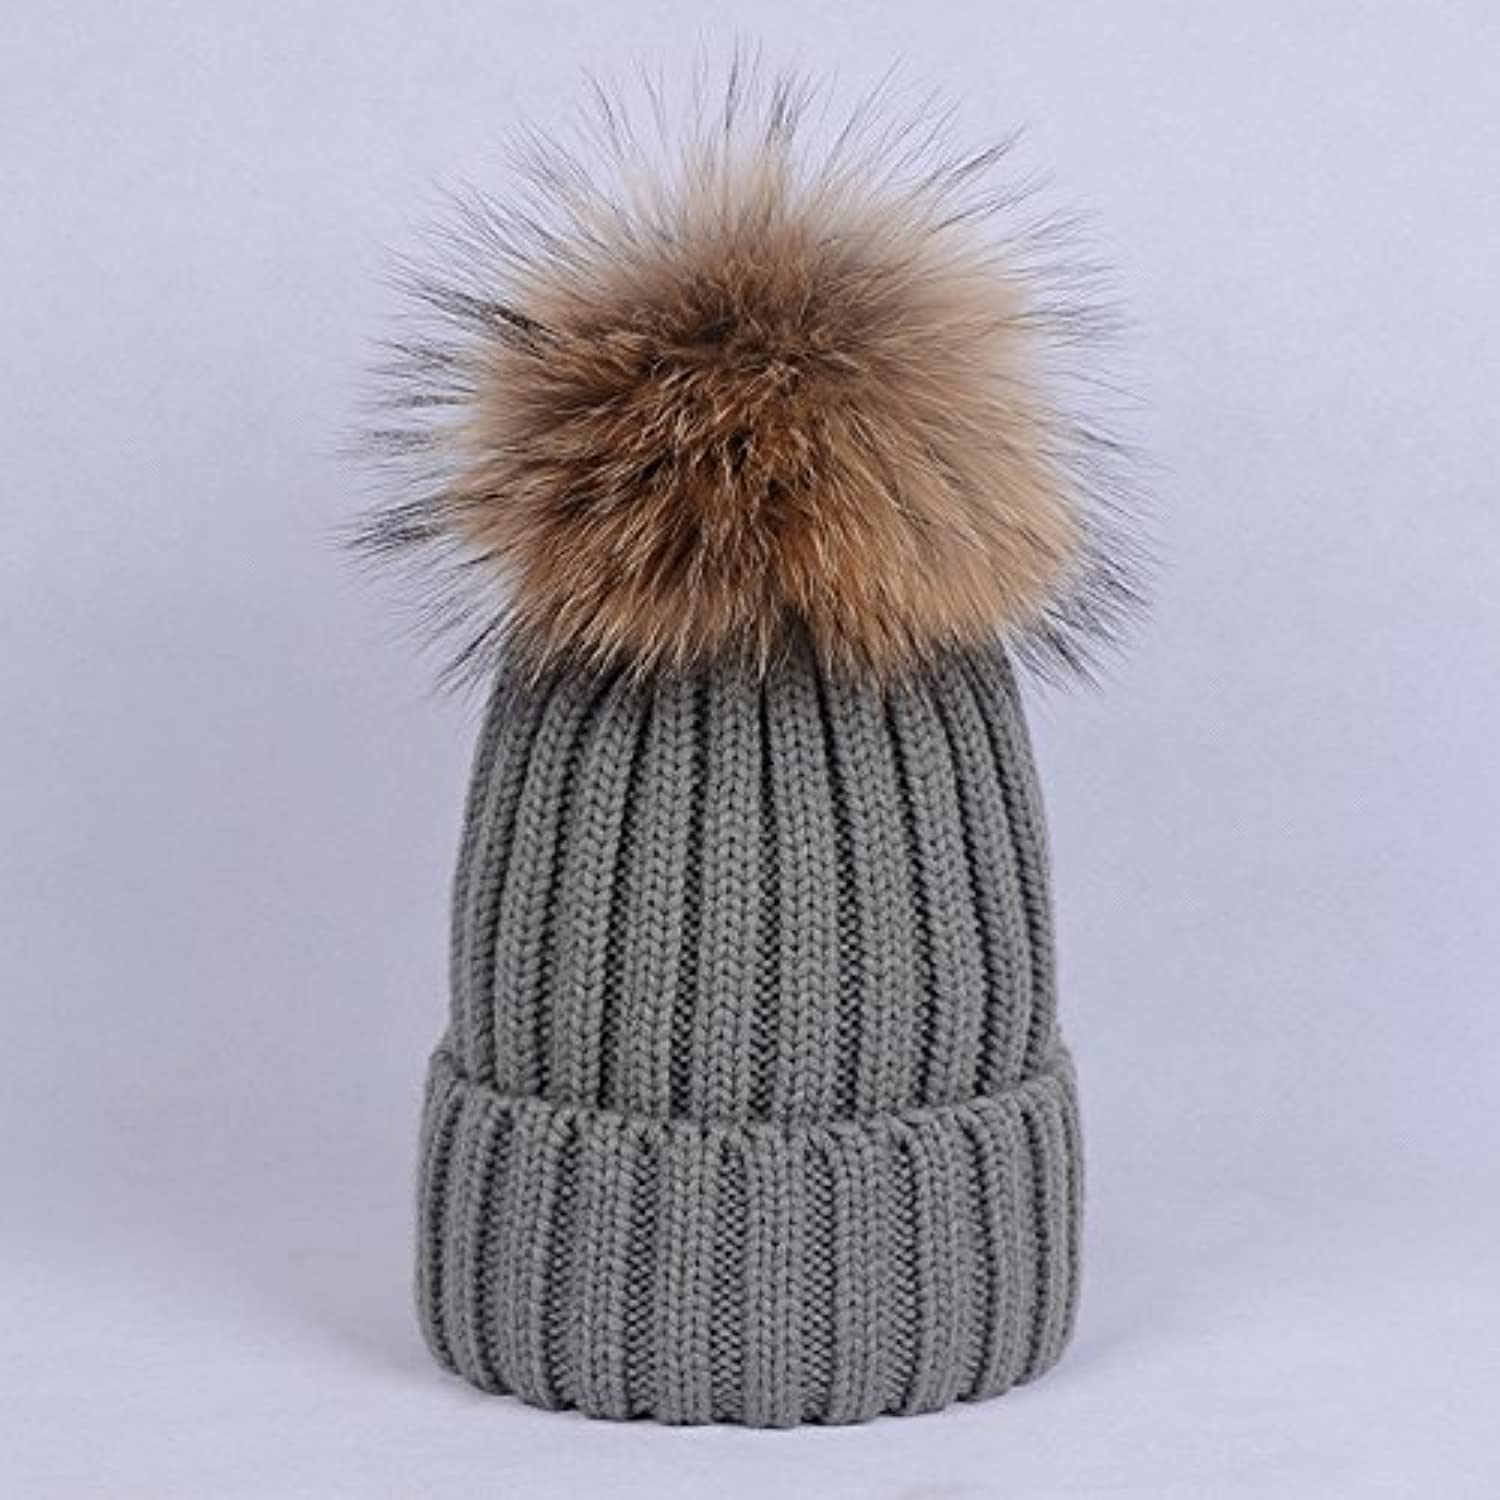 NEWC Autumn and winter hat female Nagymaros ball of wool knitted hat cap thickening